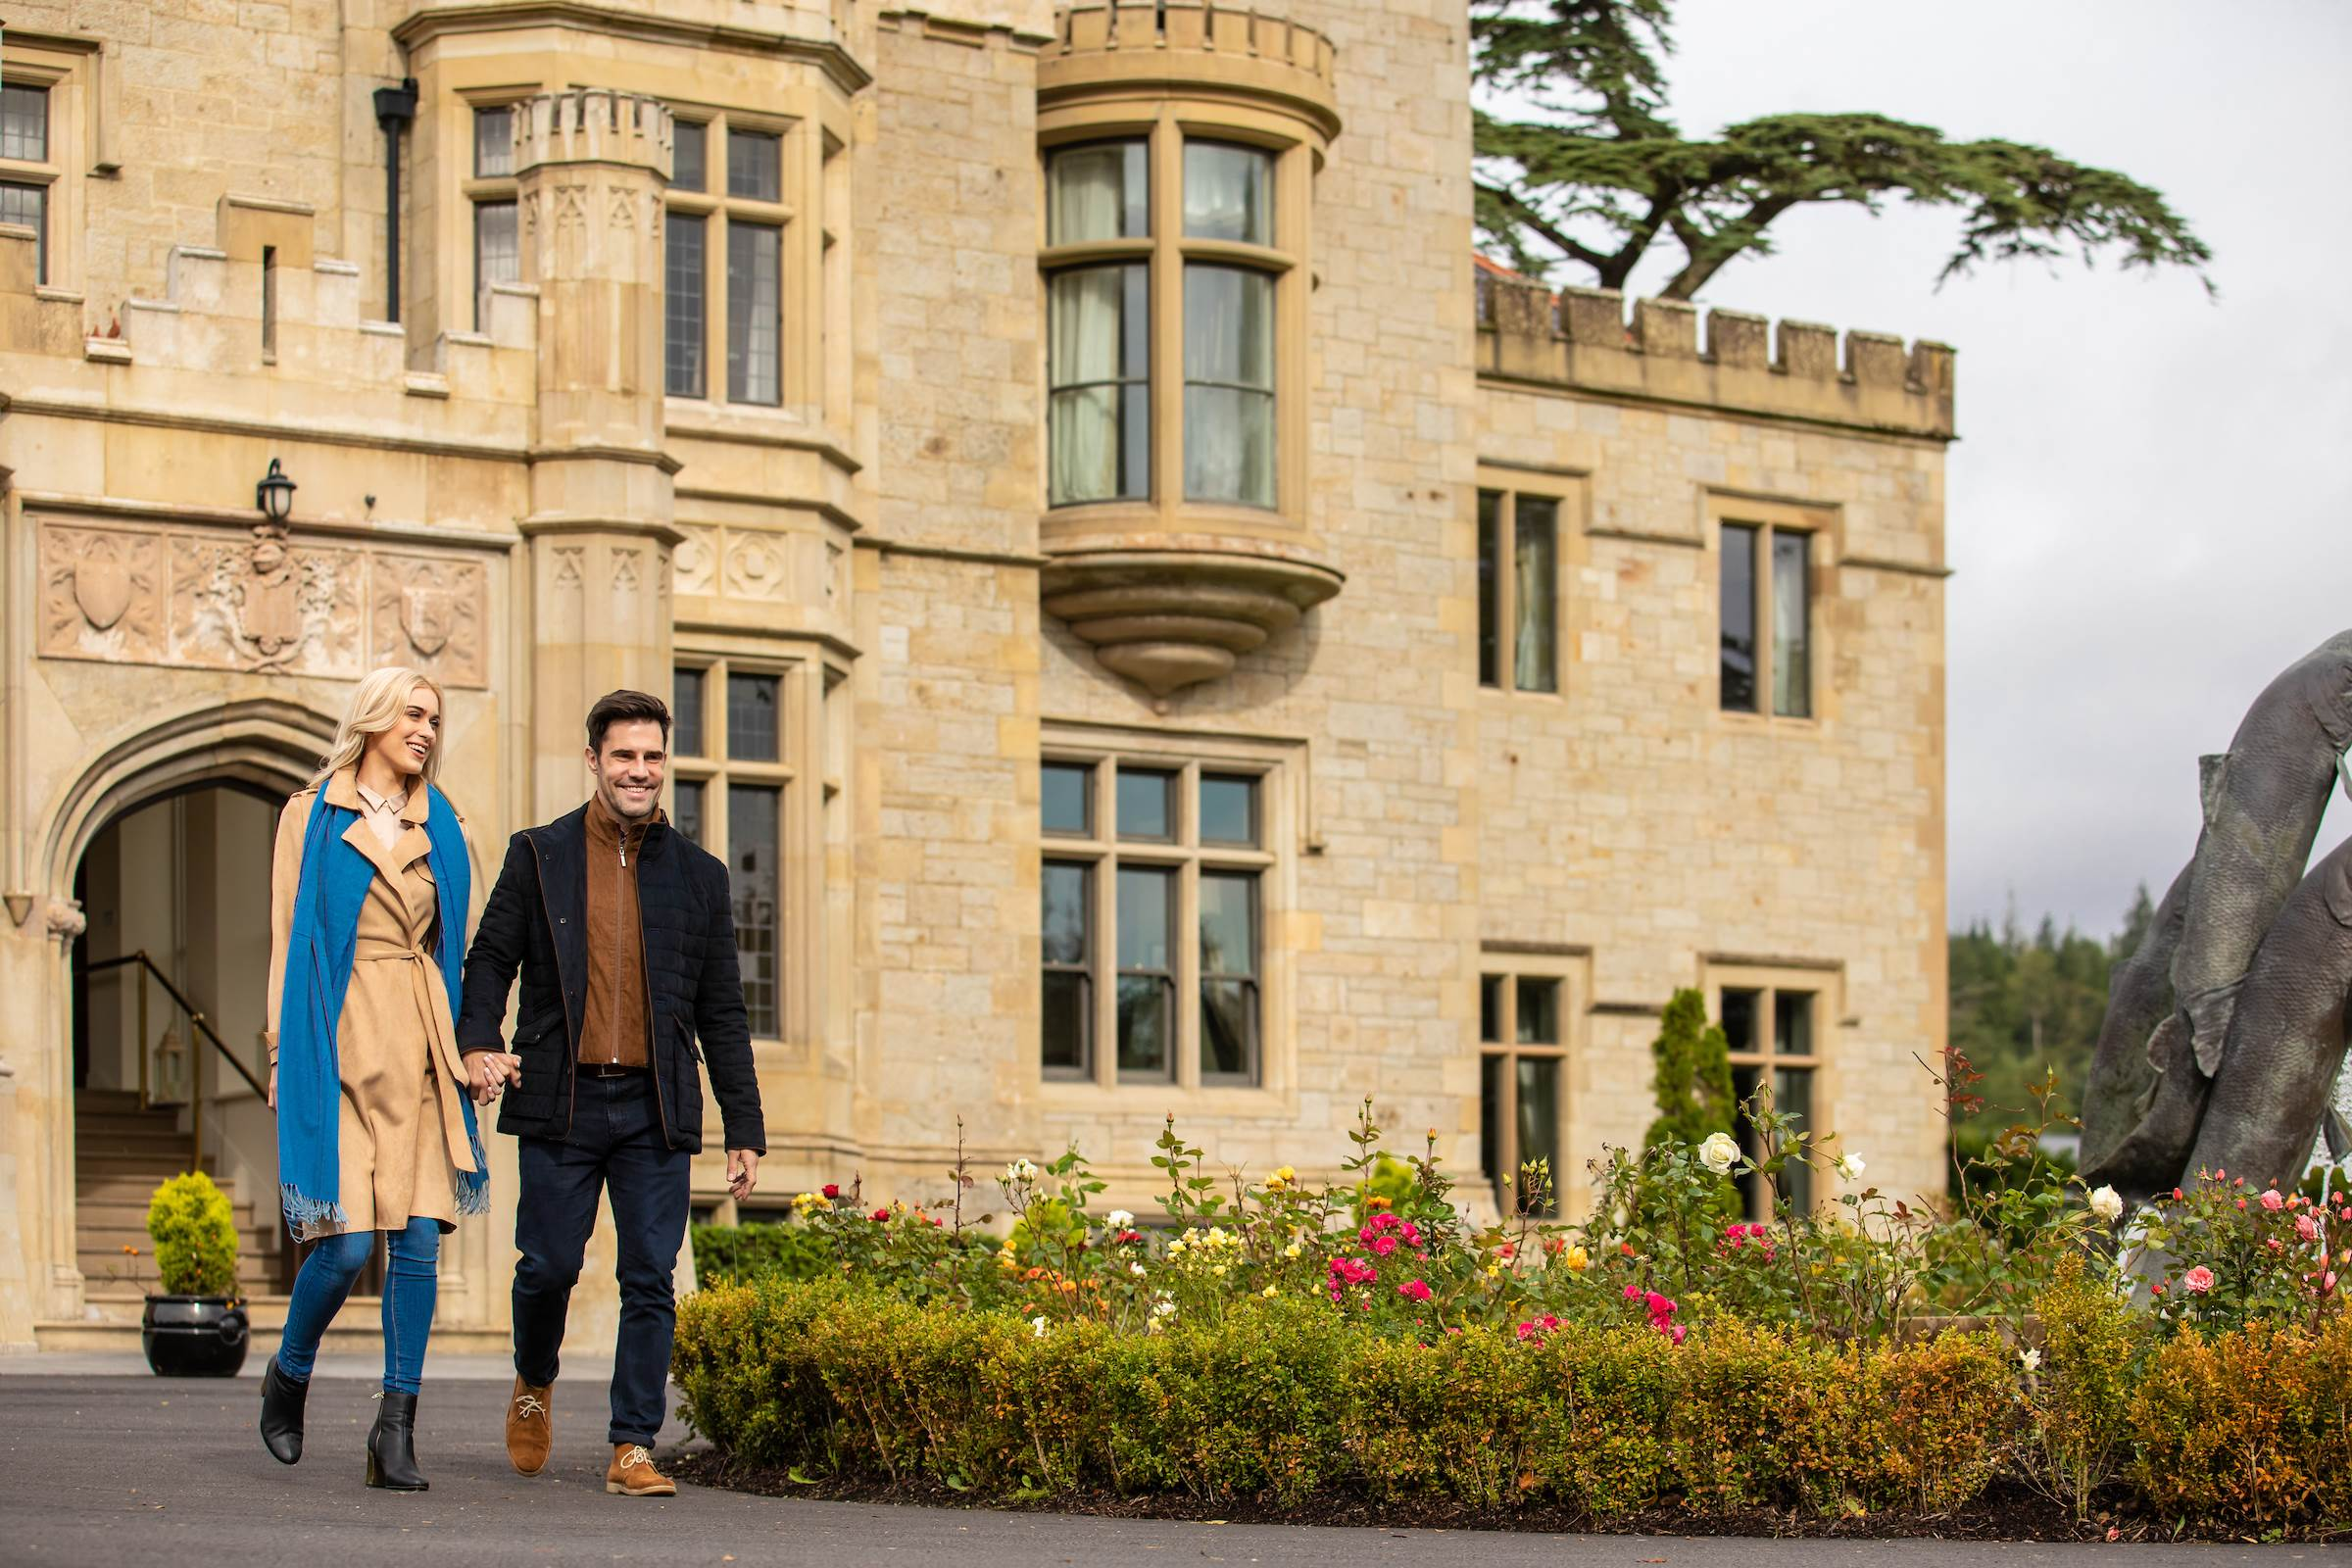 Romance at Lough Eske Castle